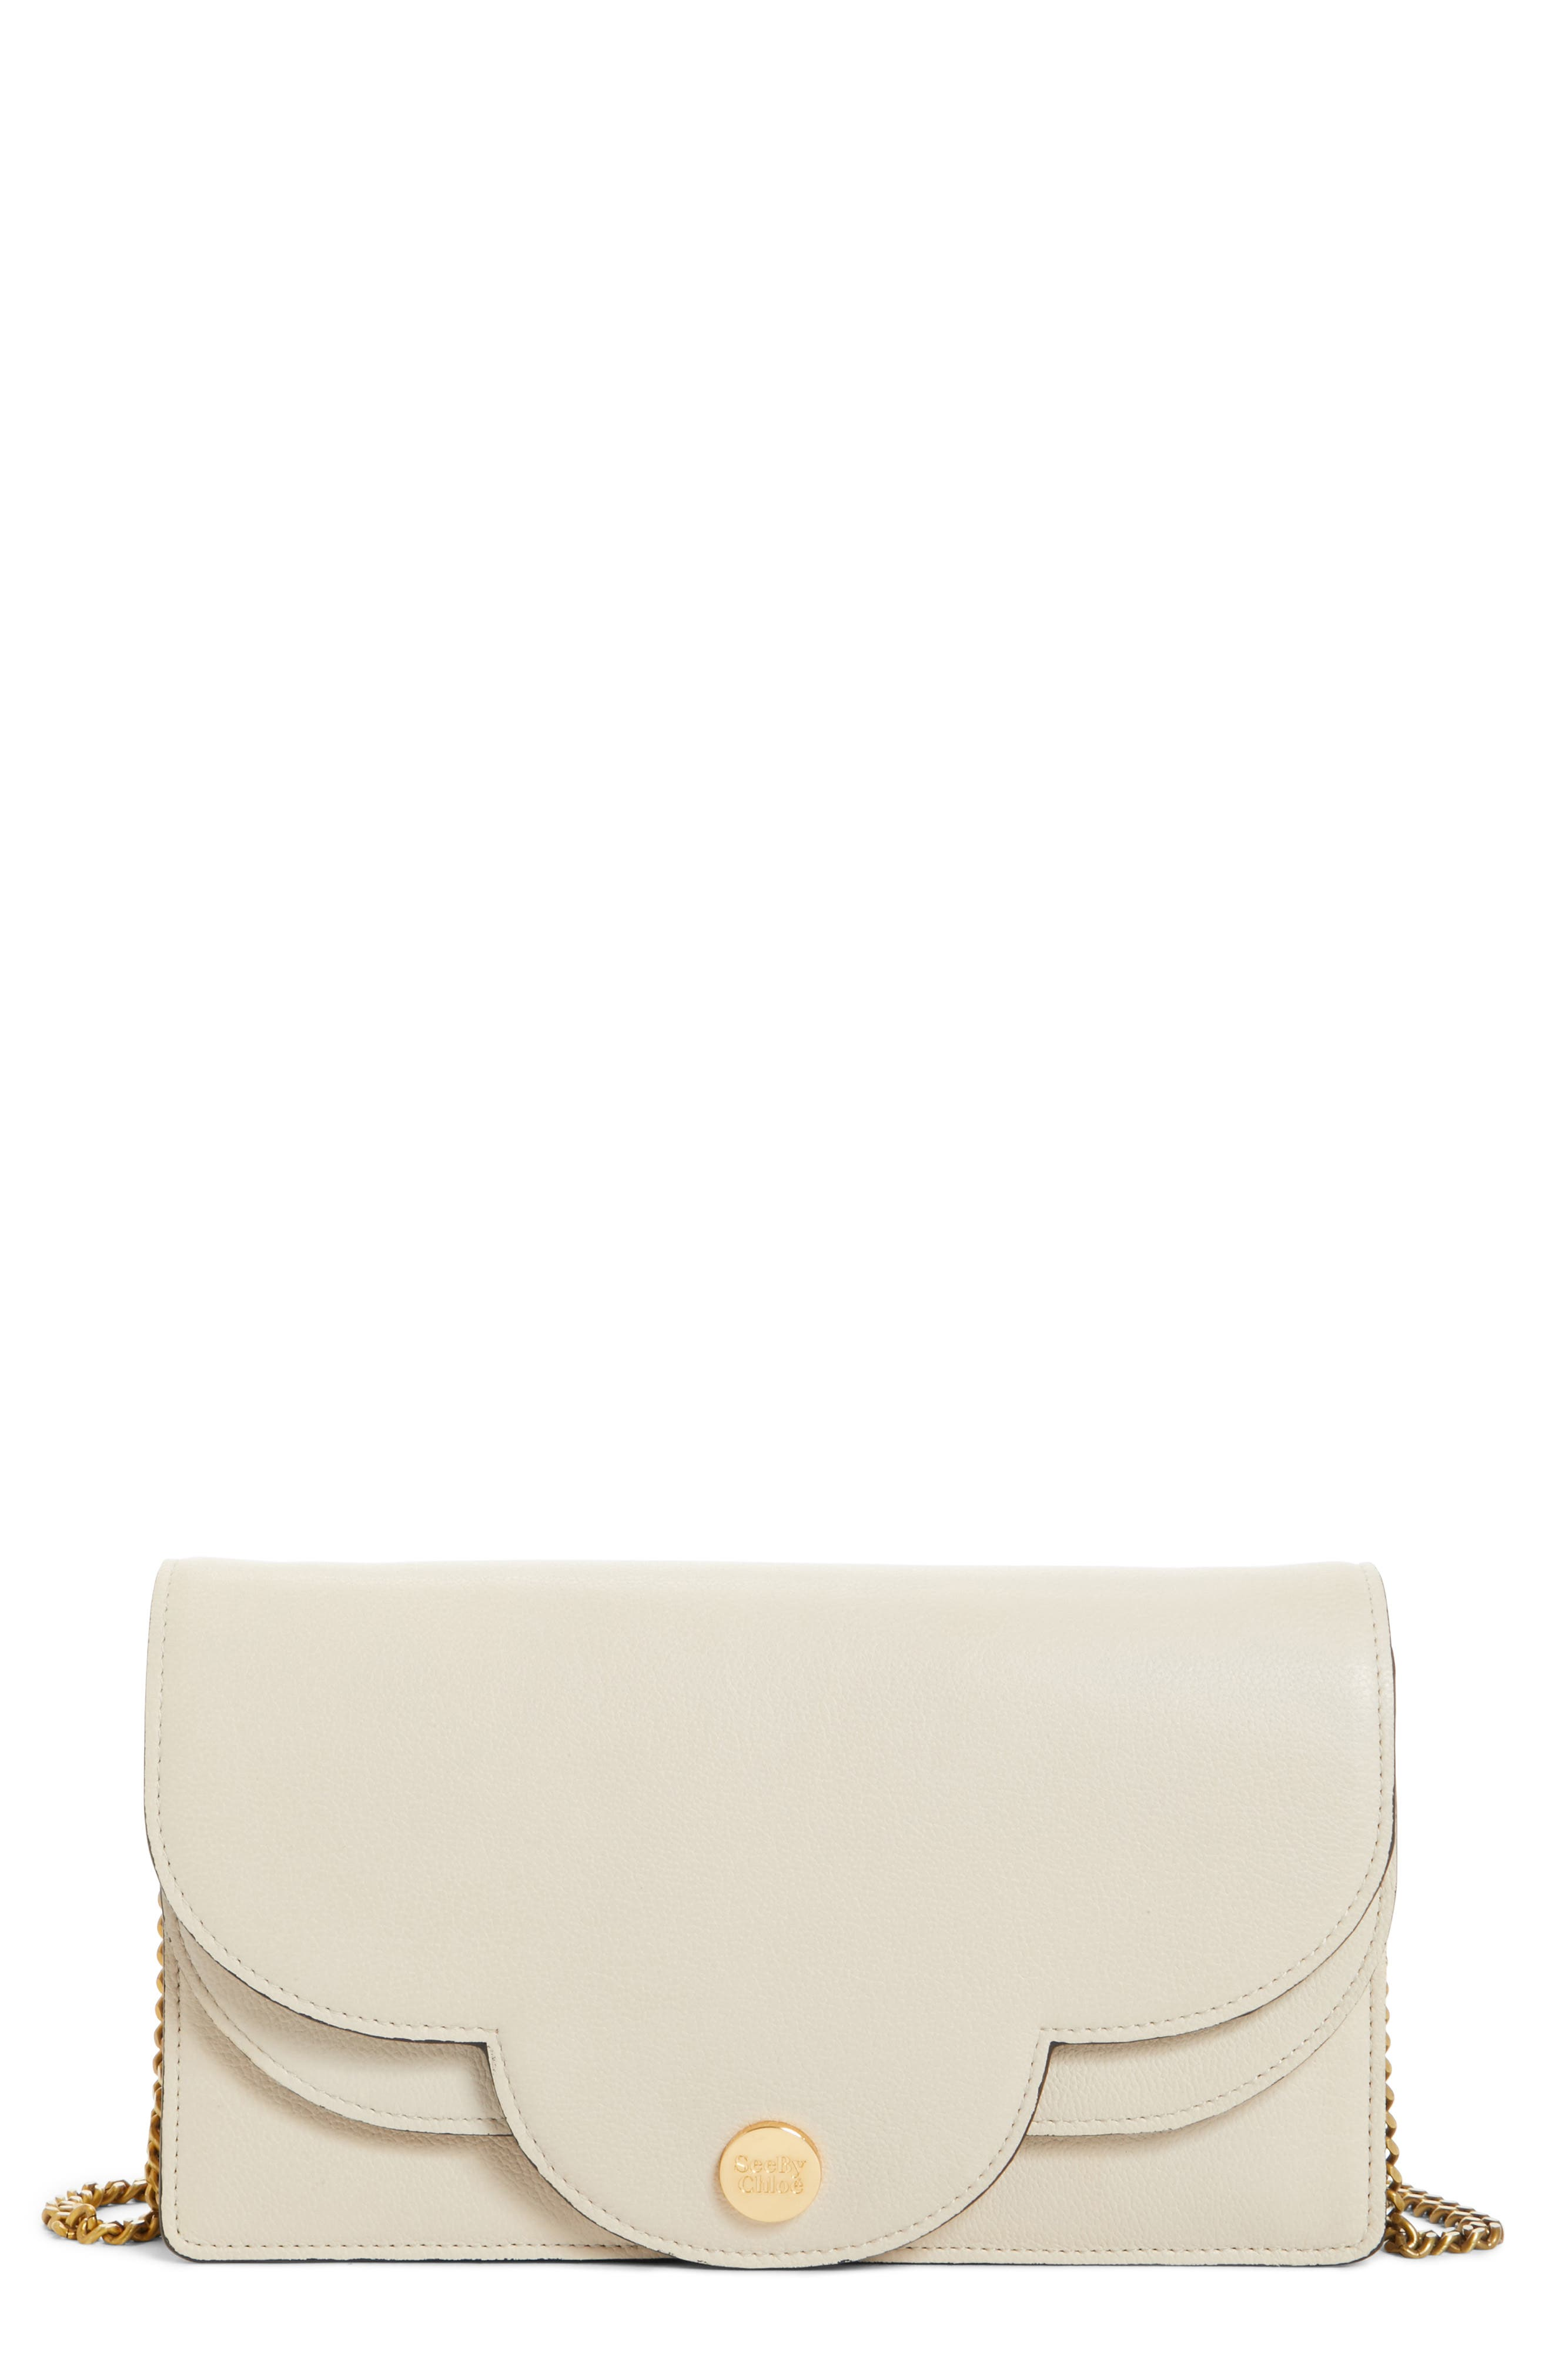 See by Chloé Polina Leather Crossbody Bag